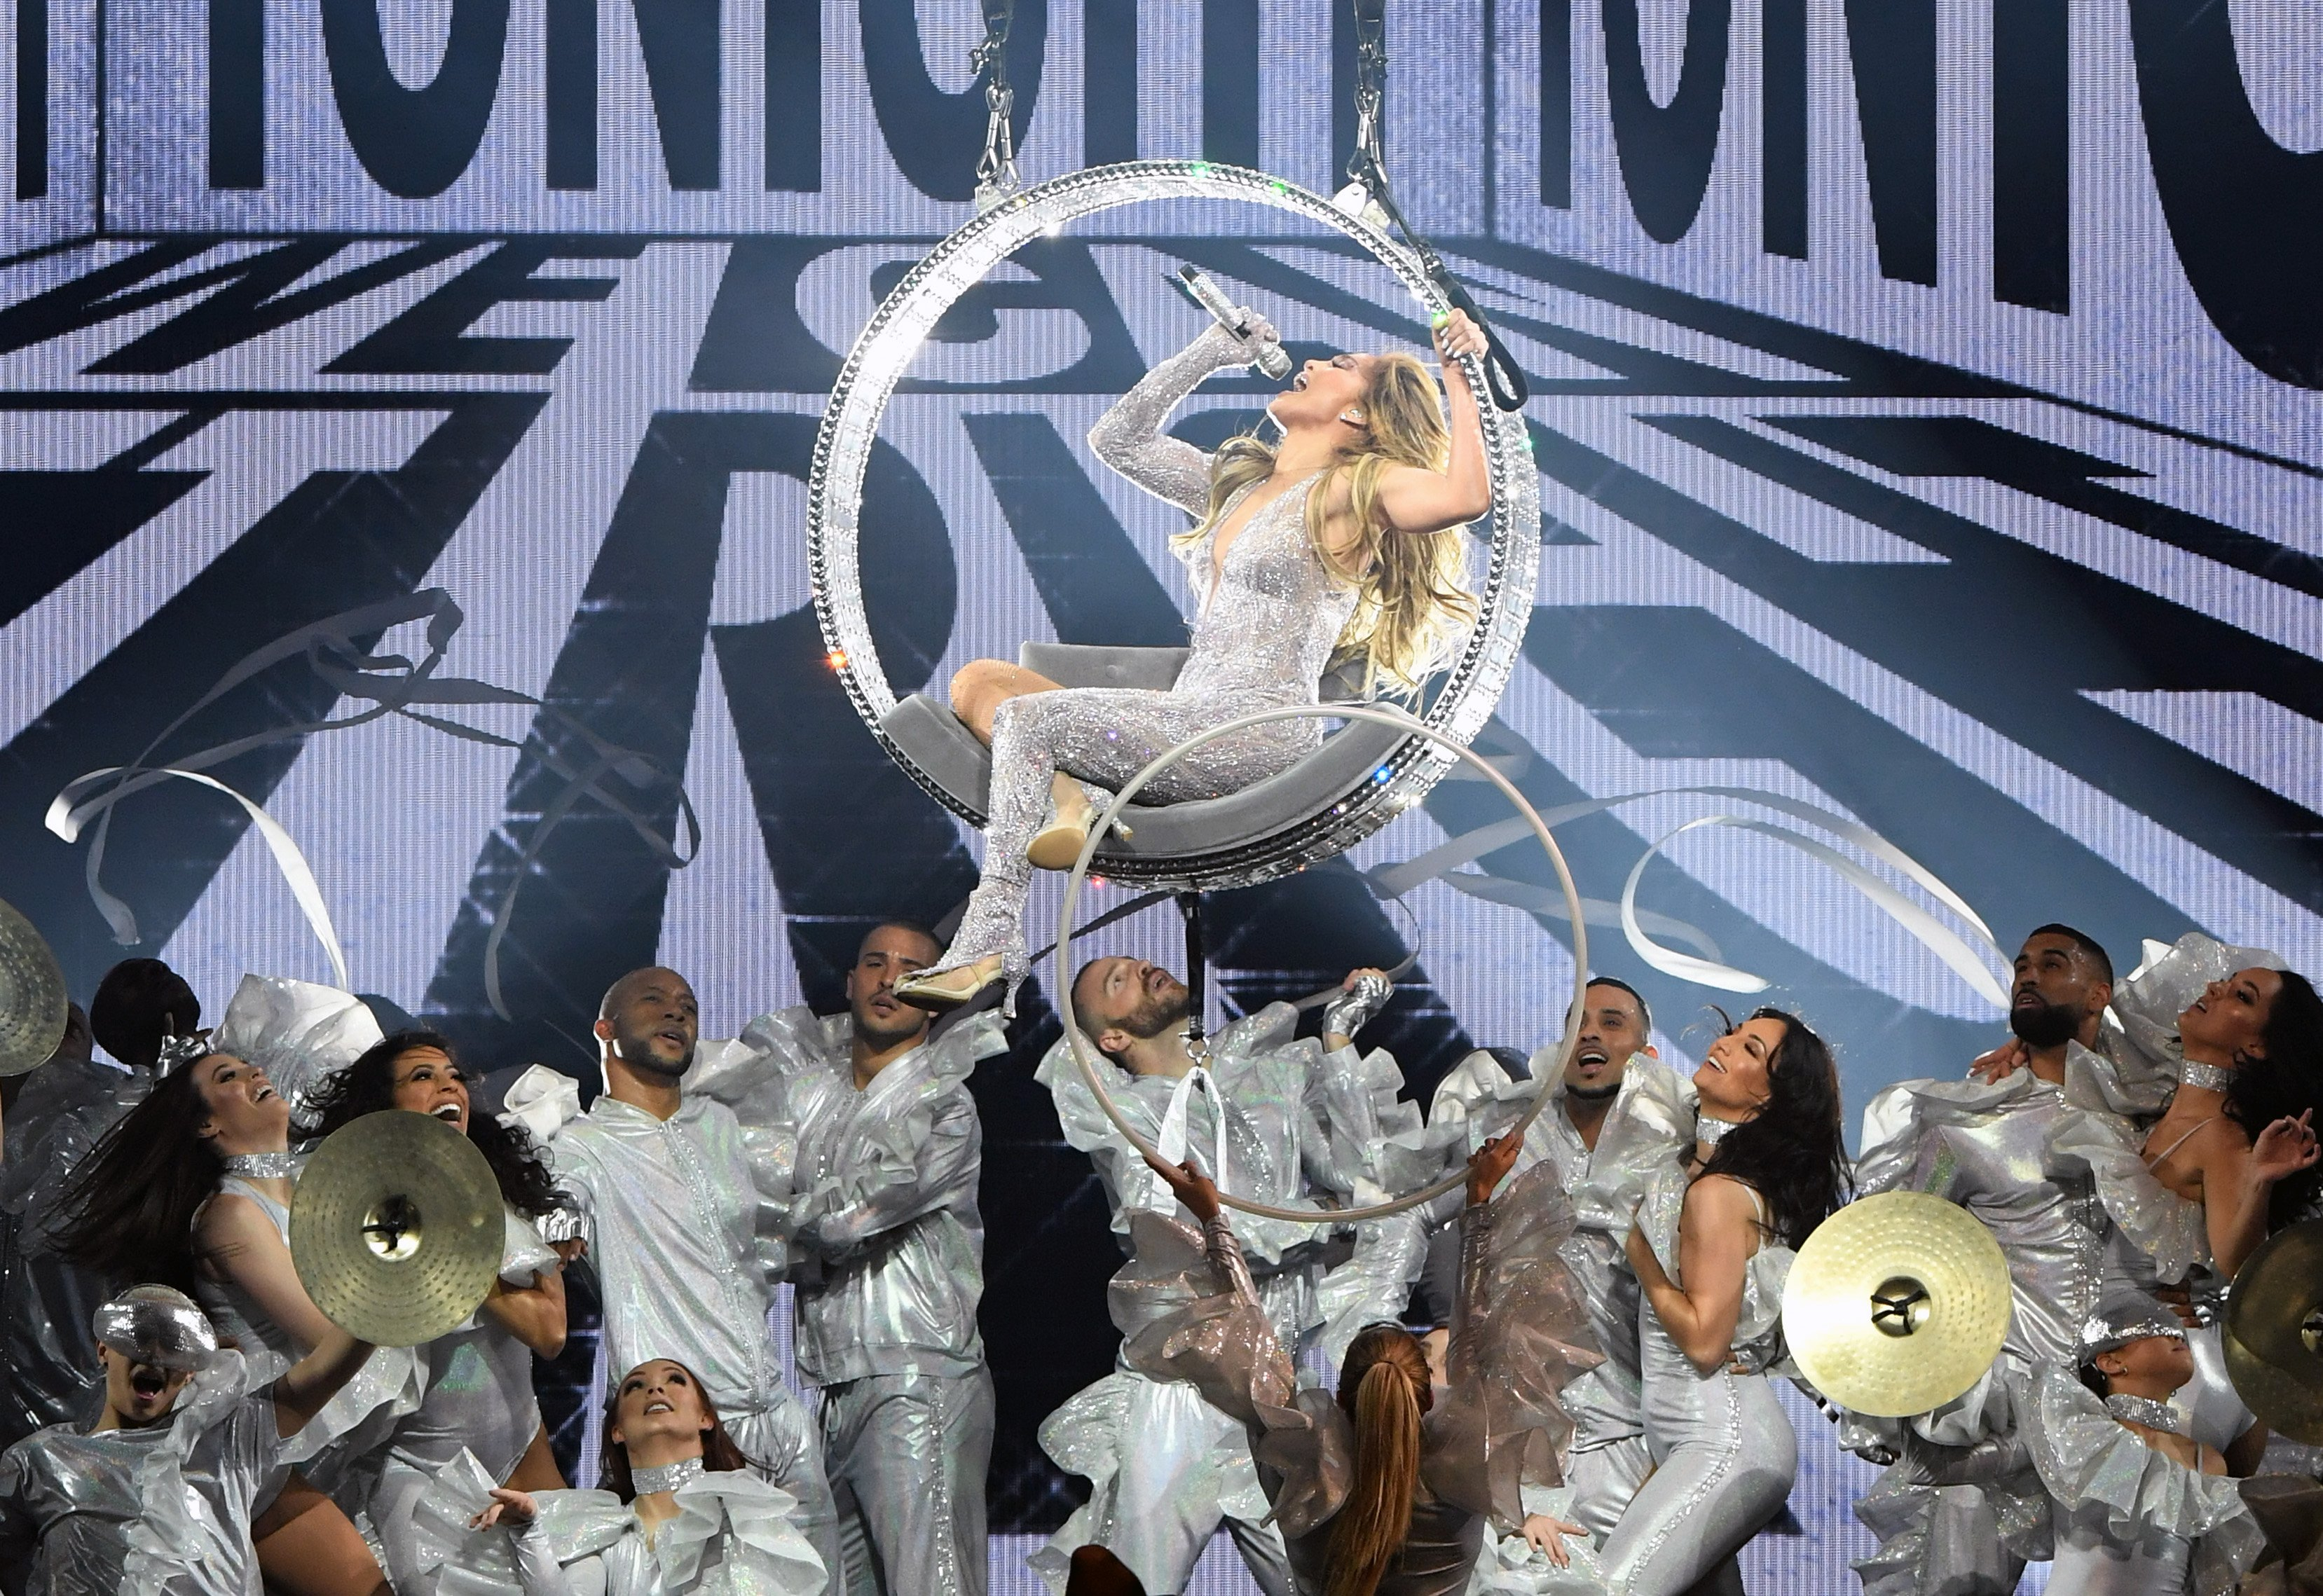 Image Credit: Getty Images / Jennifer Lopez performing with a bunch of dancers.